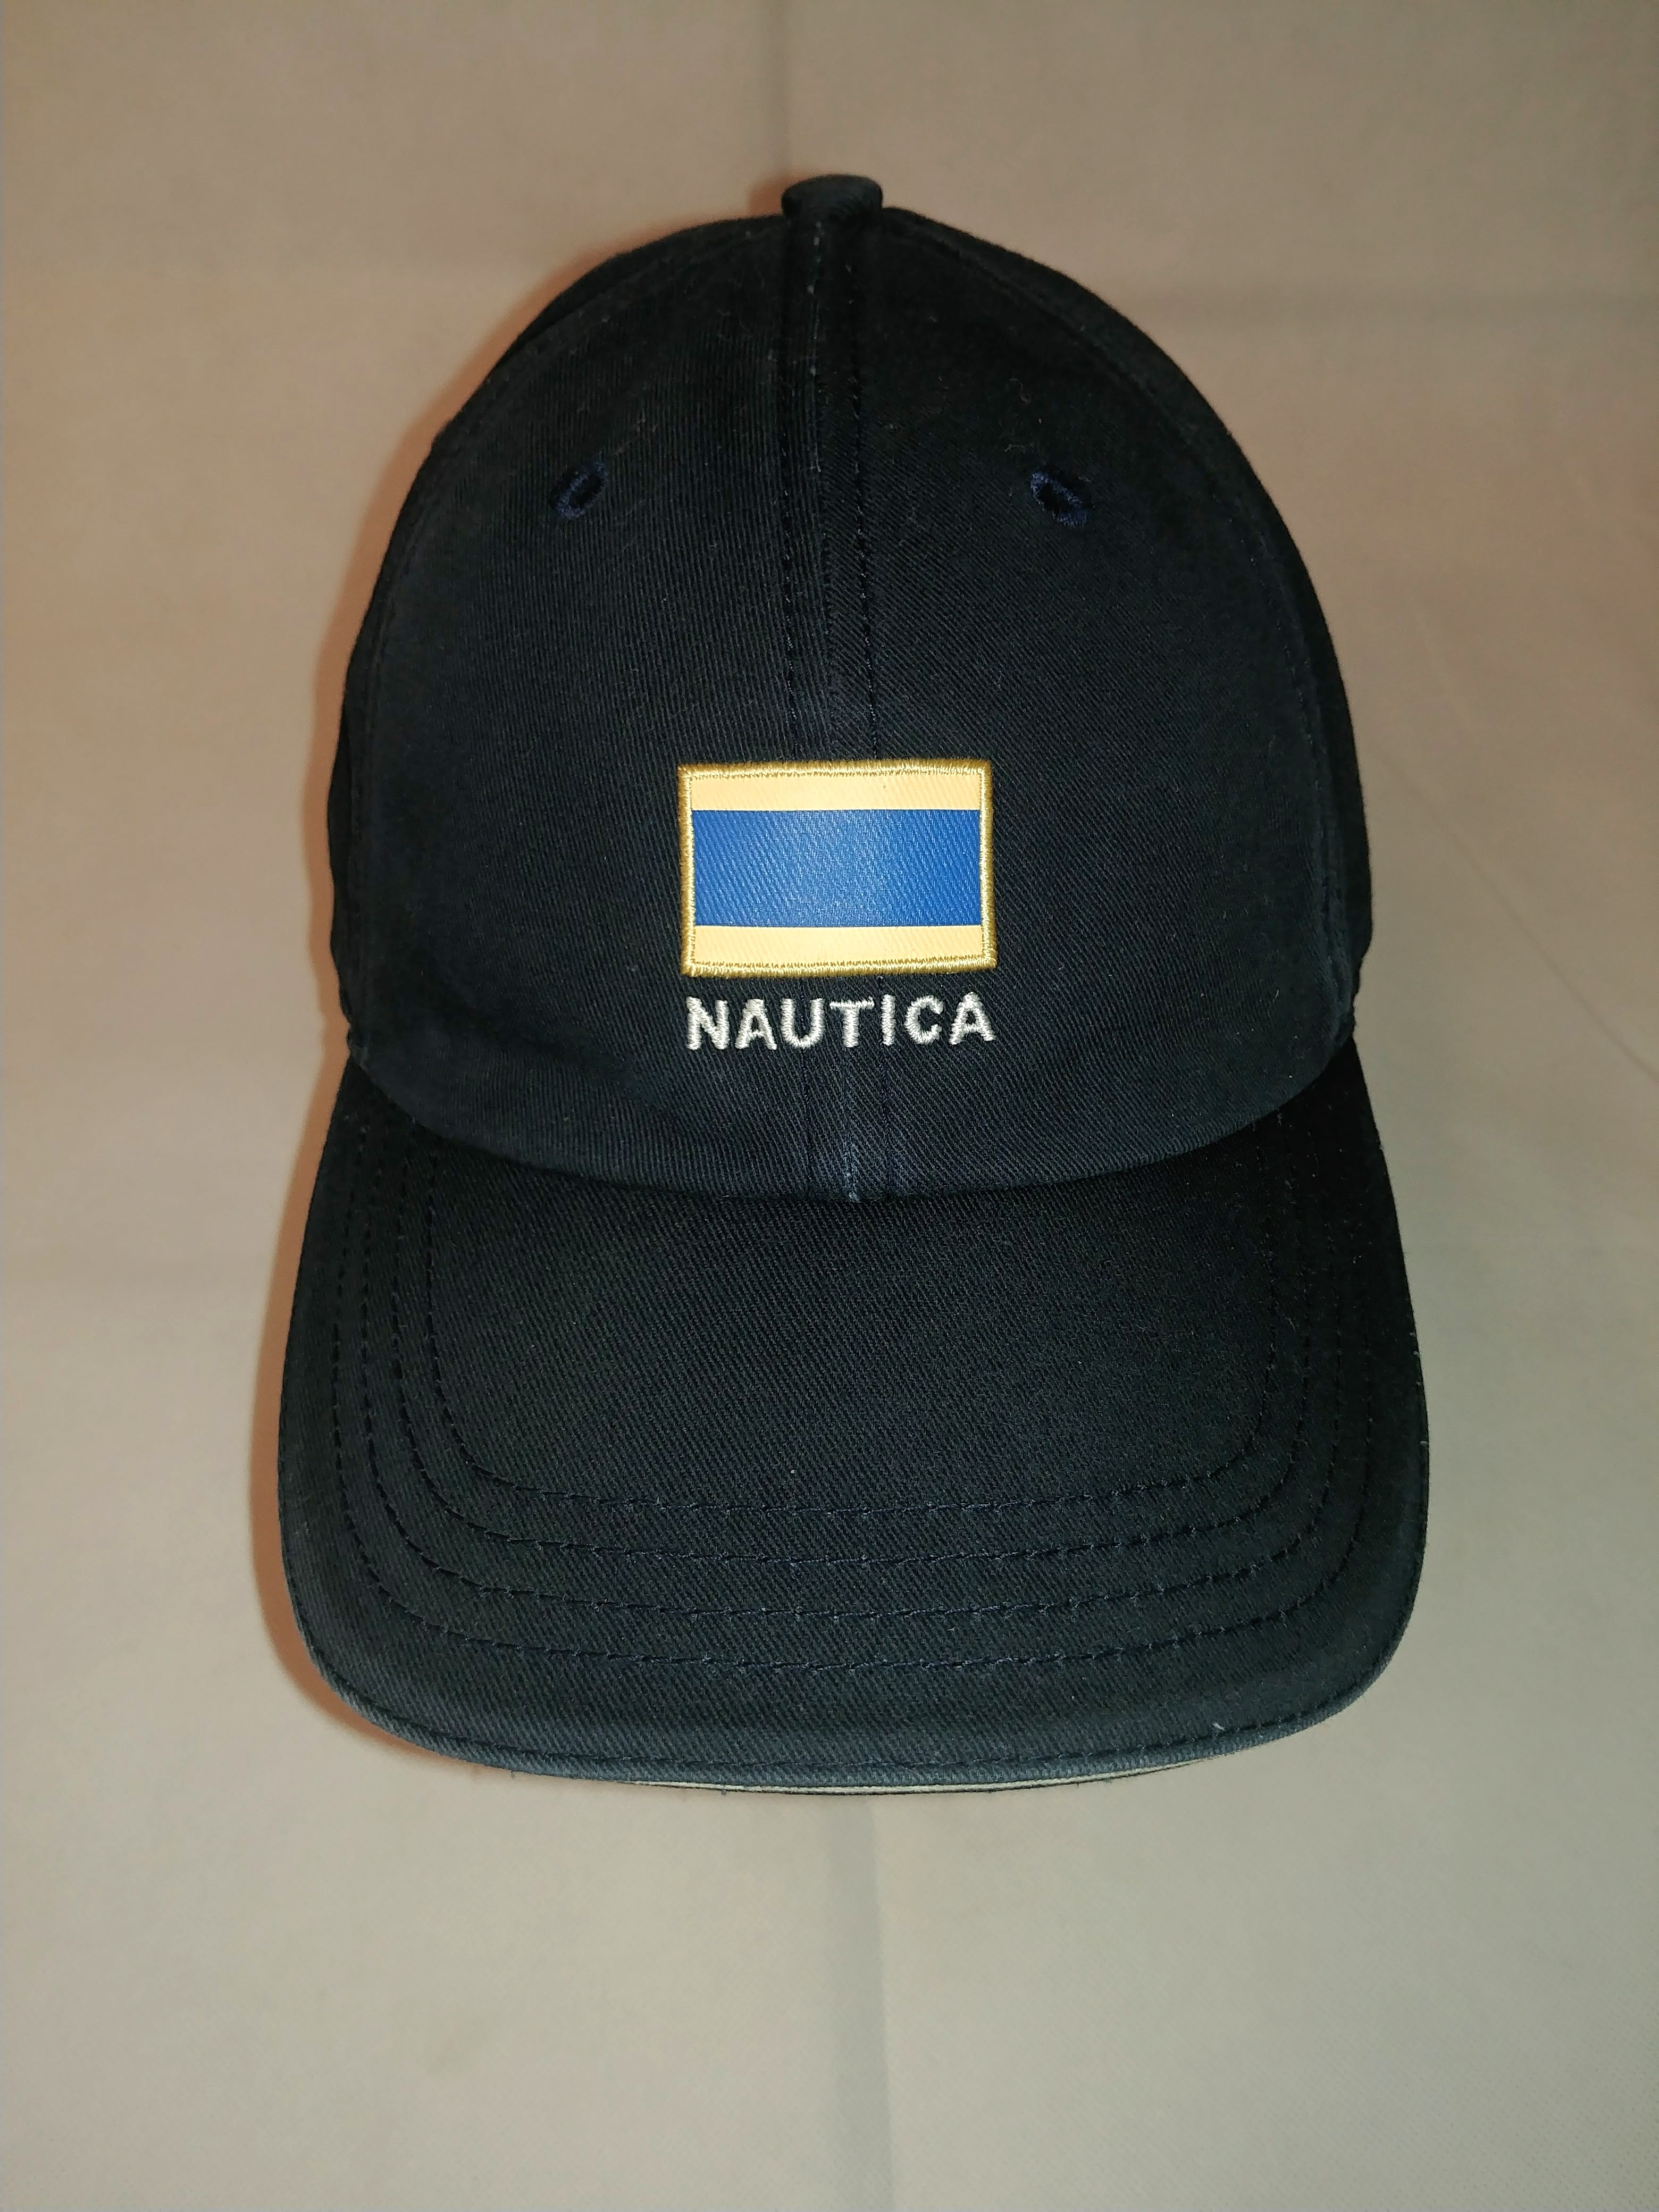 c213995d70a6a Nautica Nautica Spell Out Flag Patch Strapback Hat Size one size - Hats for  Sale - Grailed